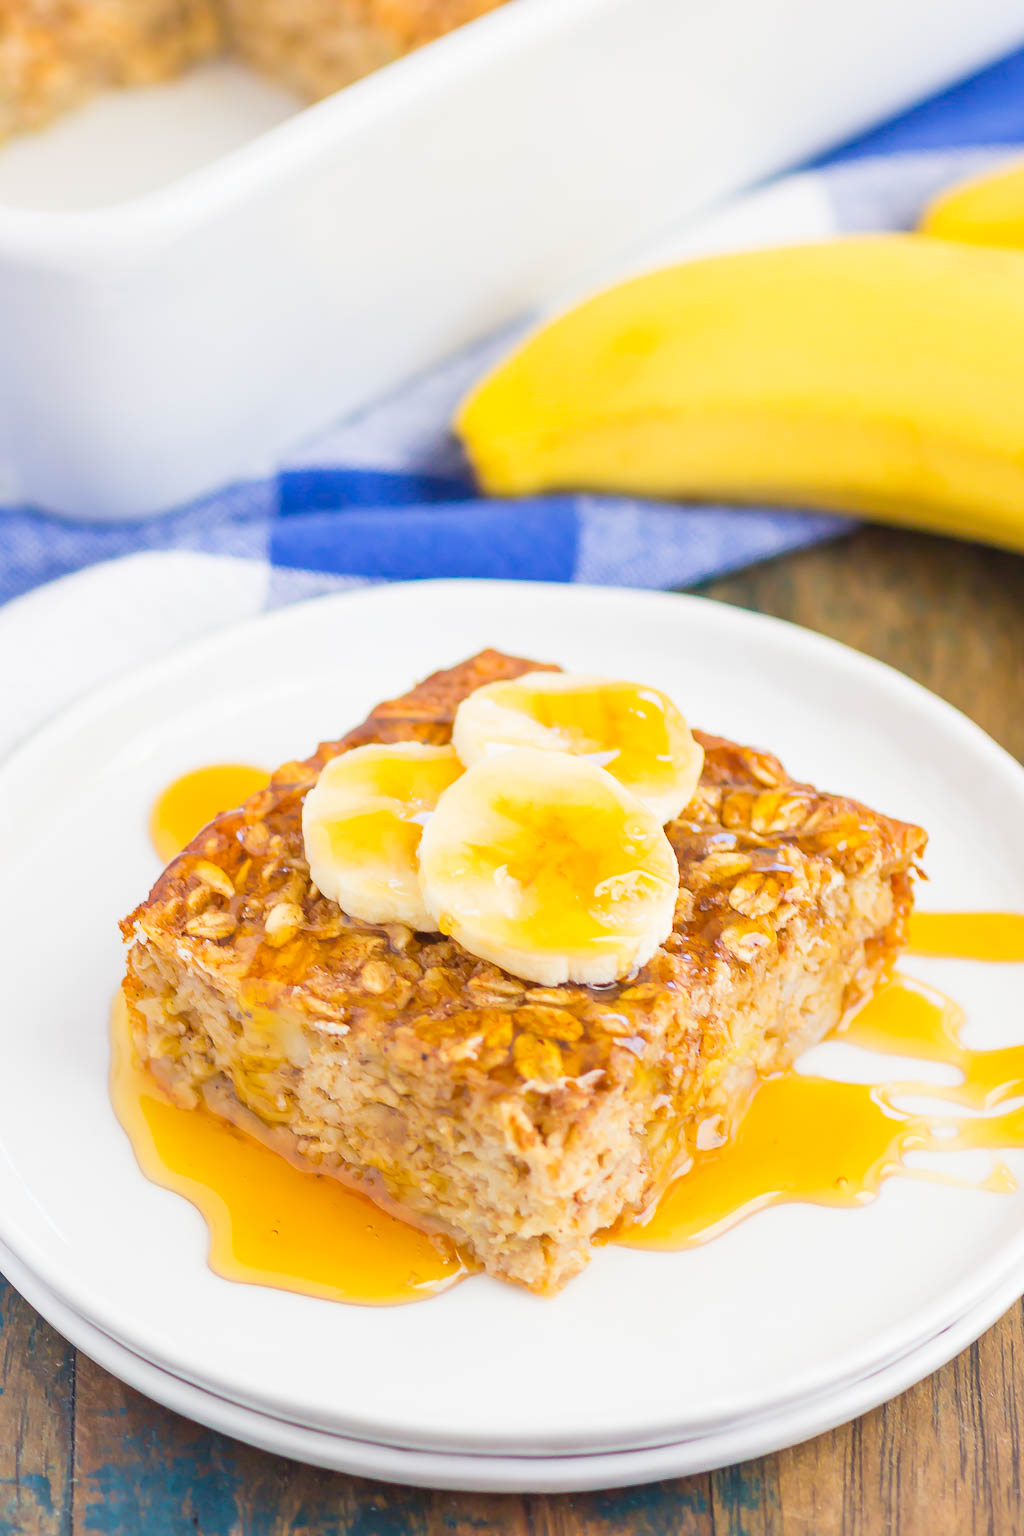 This Baked Banana Bread Oatmeal is filled with hearty oats, sweet bananas, and just the right amount of spices. It's the perfect dish to make on the weekend and slice up for your weekday breakfast! #bakedoatmeal #bananaoatmeal #bakedbananaoatmeal